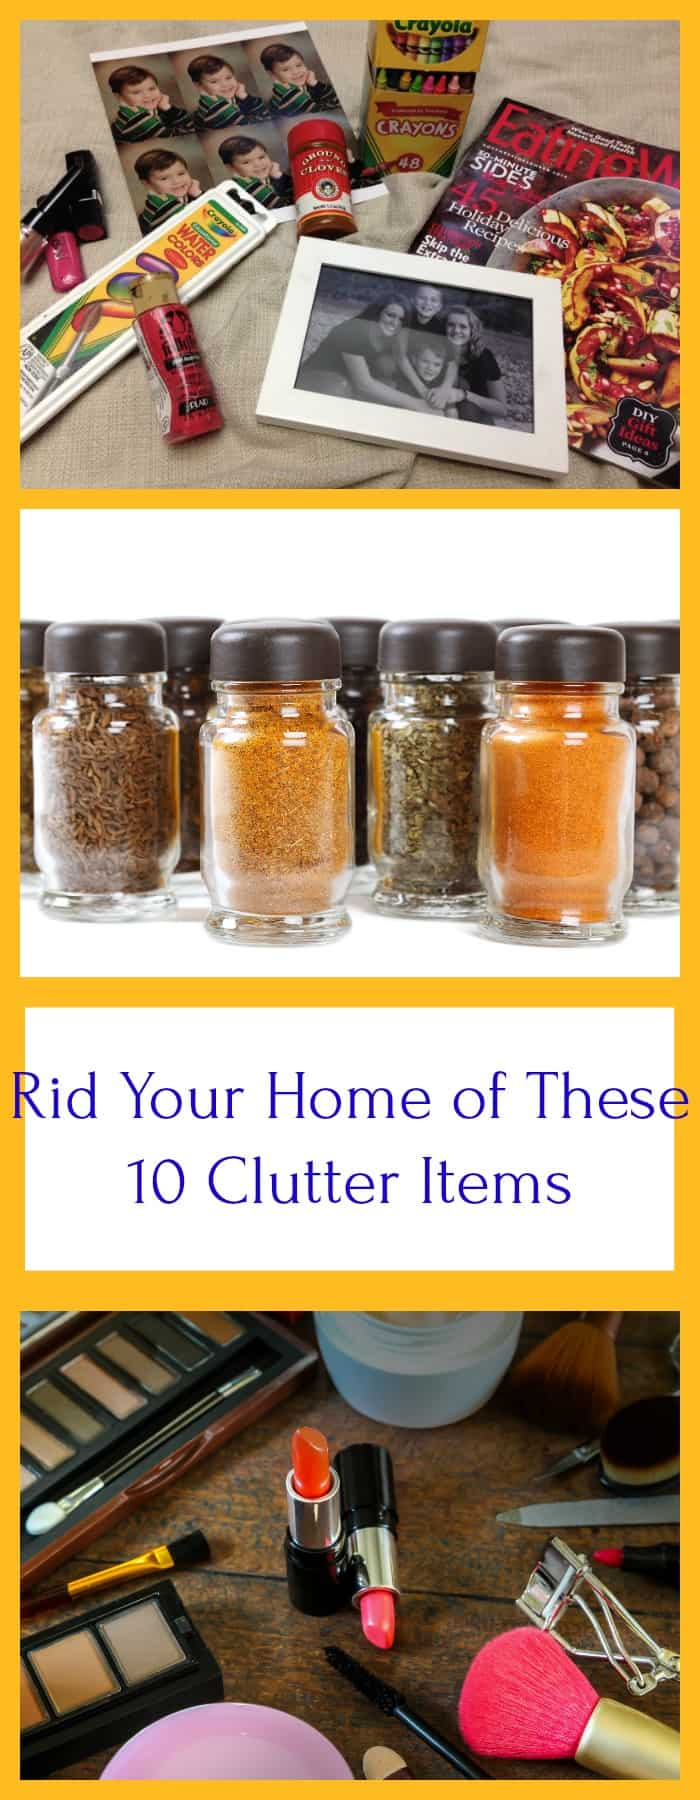 clutter items